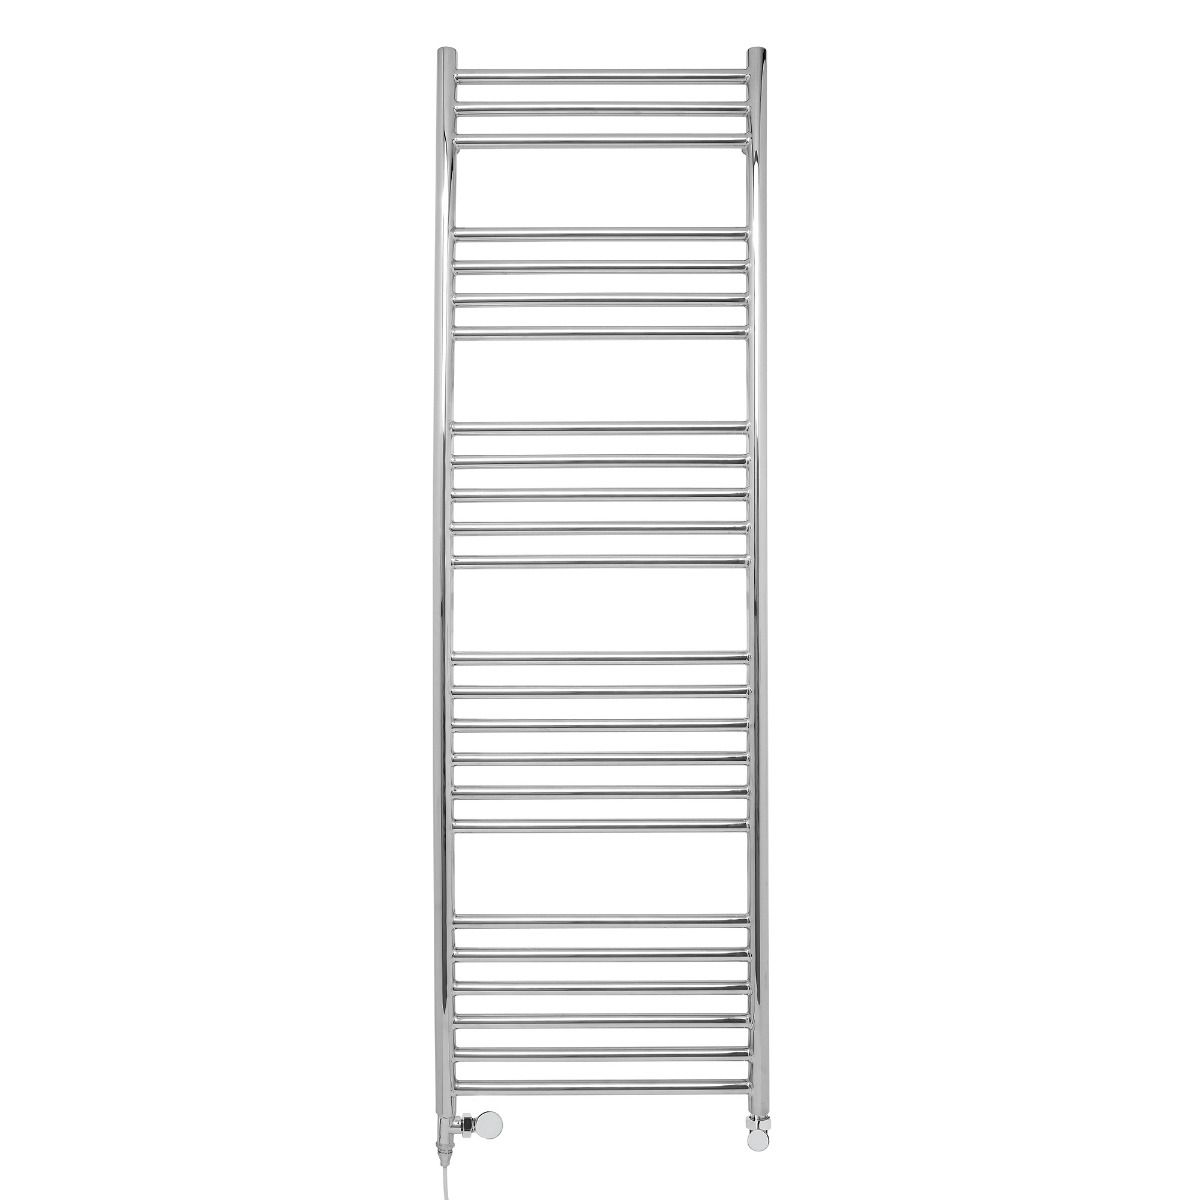 Stainless Steel Heated Towel Rail 160x50